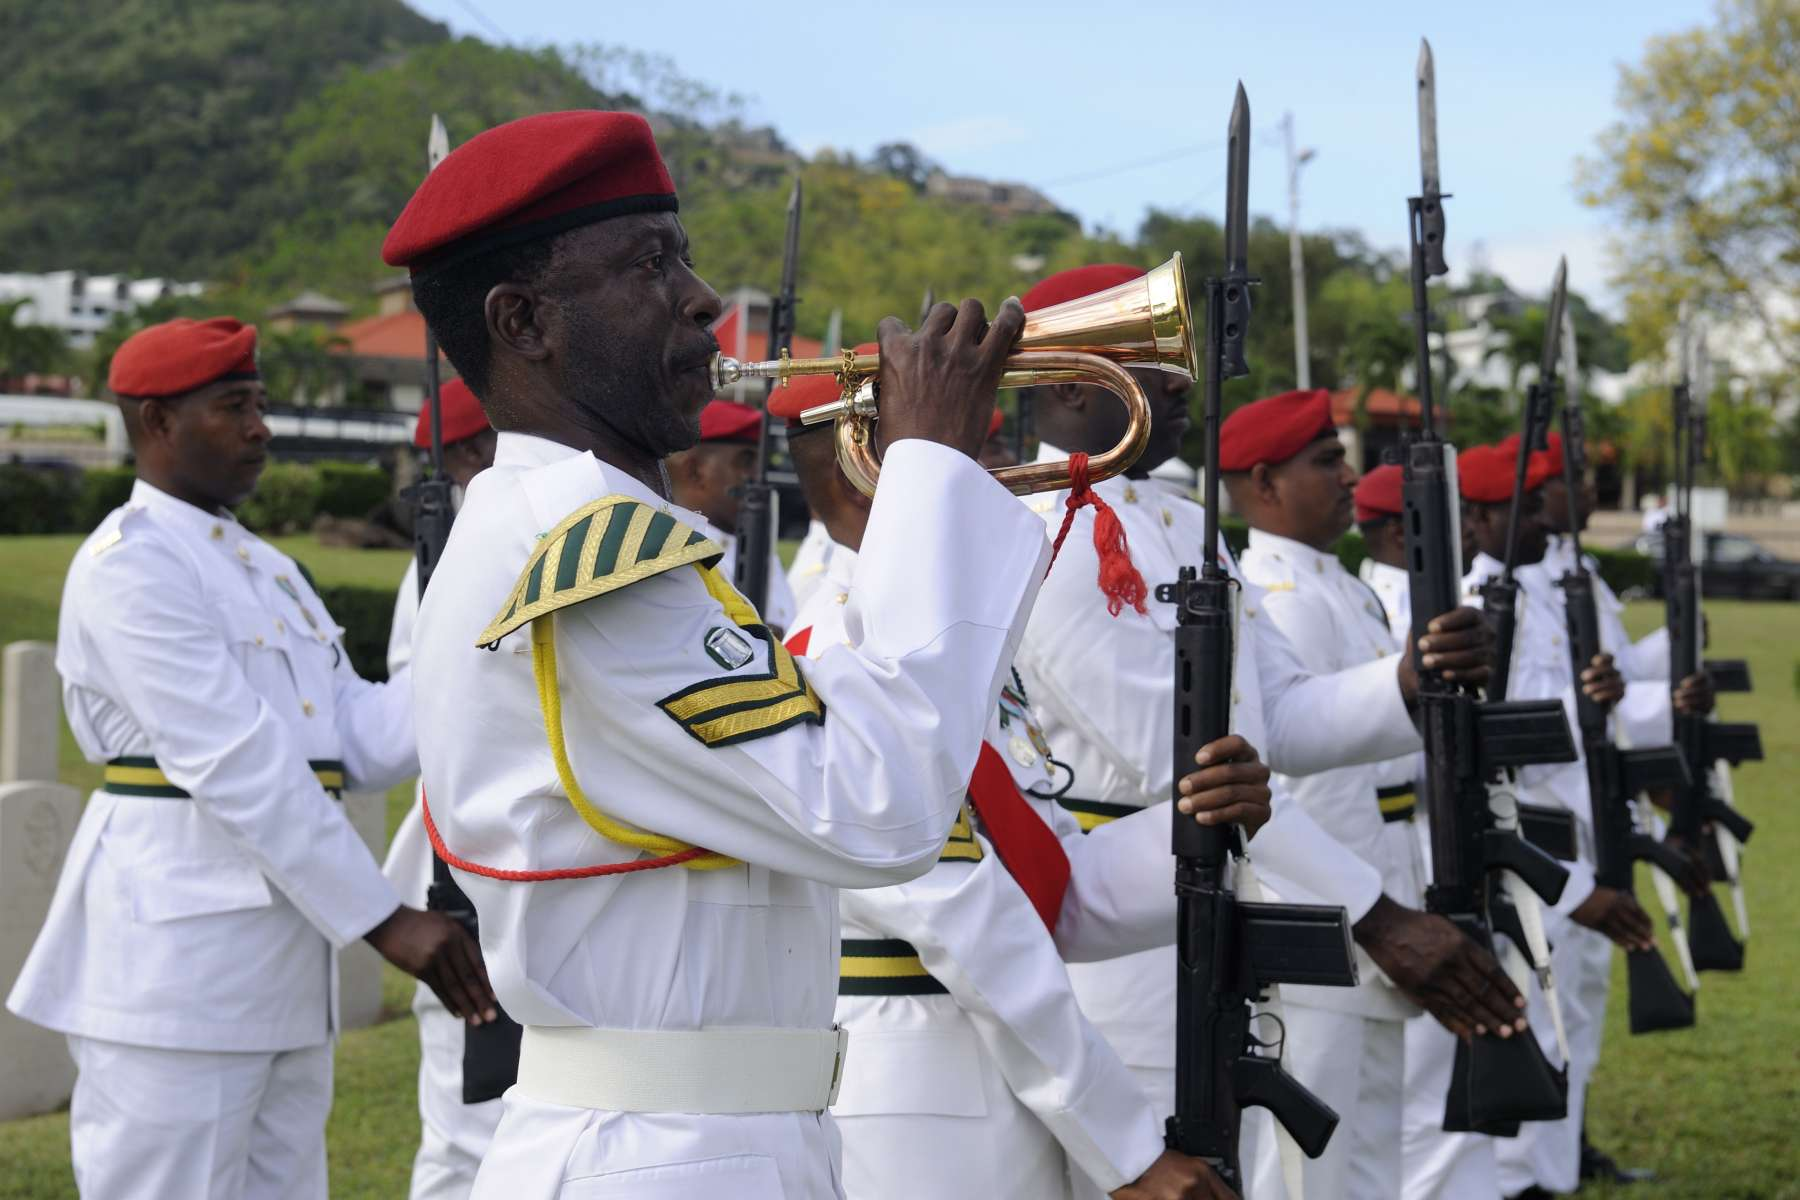 Many Trinidad and Tobago soldiers took part in the event.